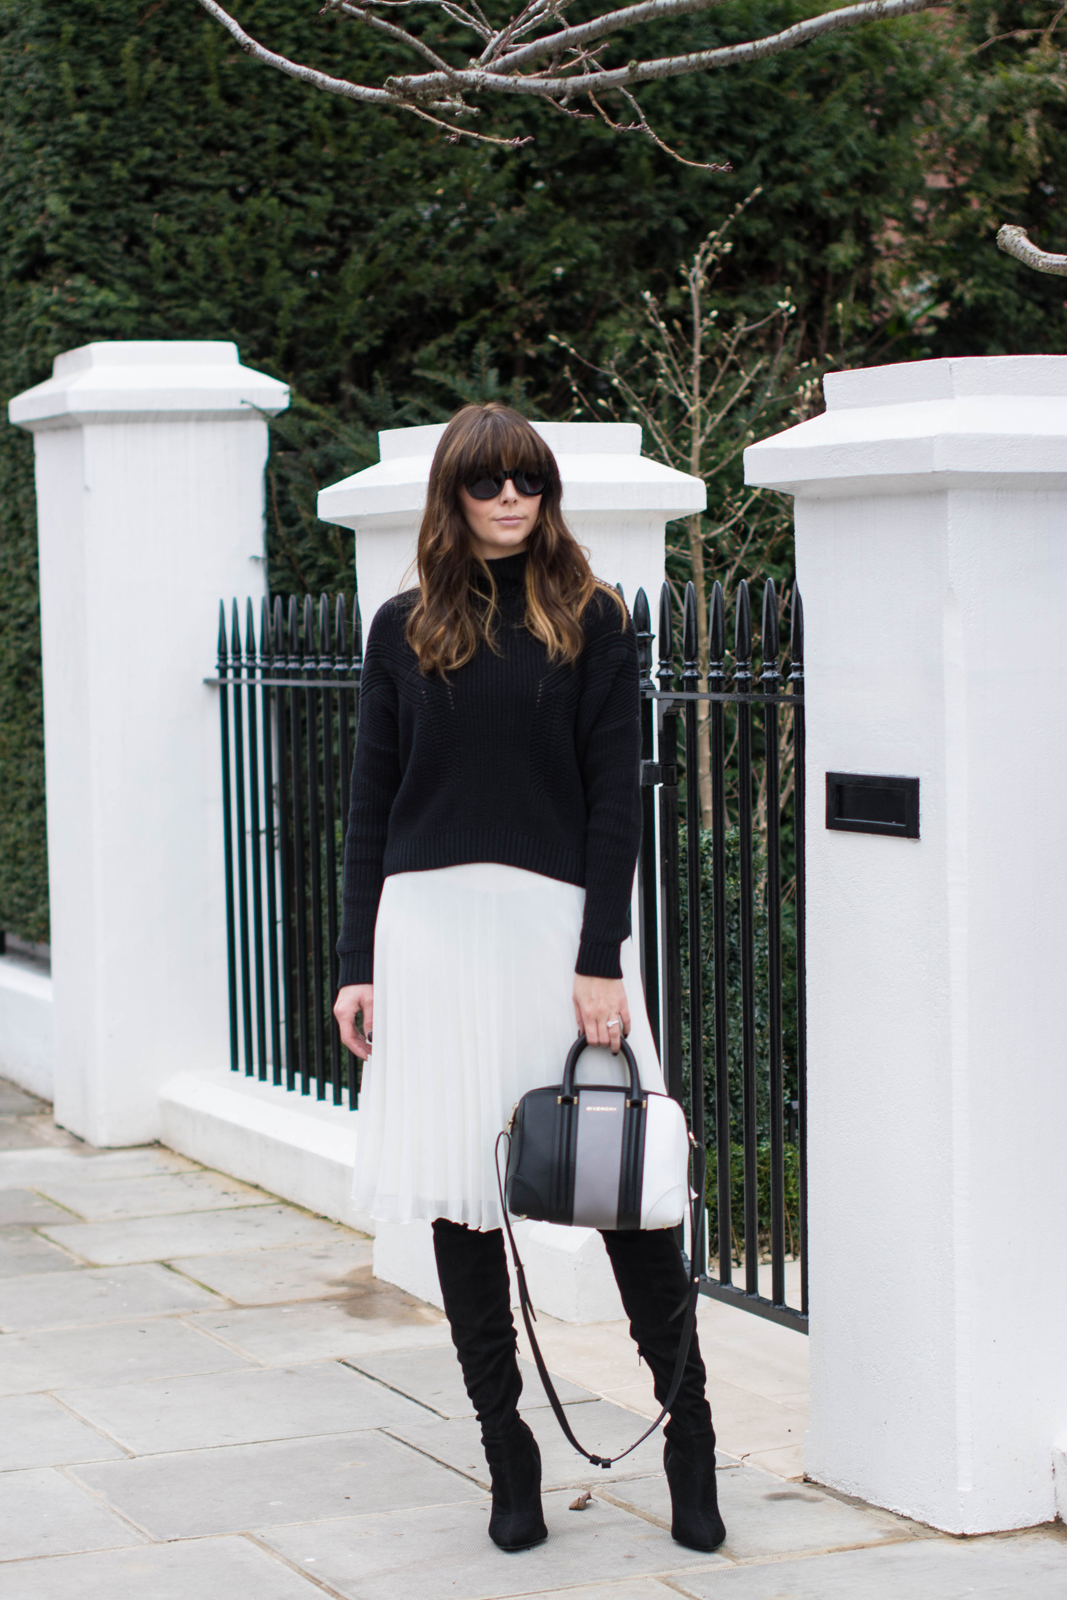 EJSTYLE - Black Topshop jumper, White pleated asos midi skirt, Givenchy lucrezia mini bag, Next OTK boots, monochrome OOTD